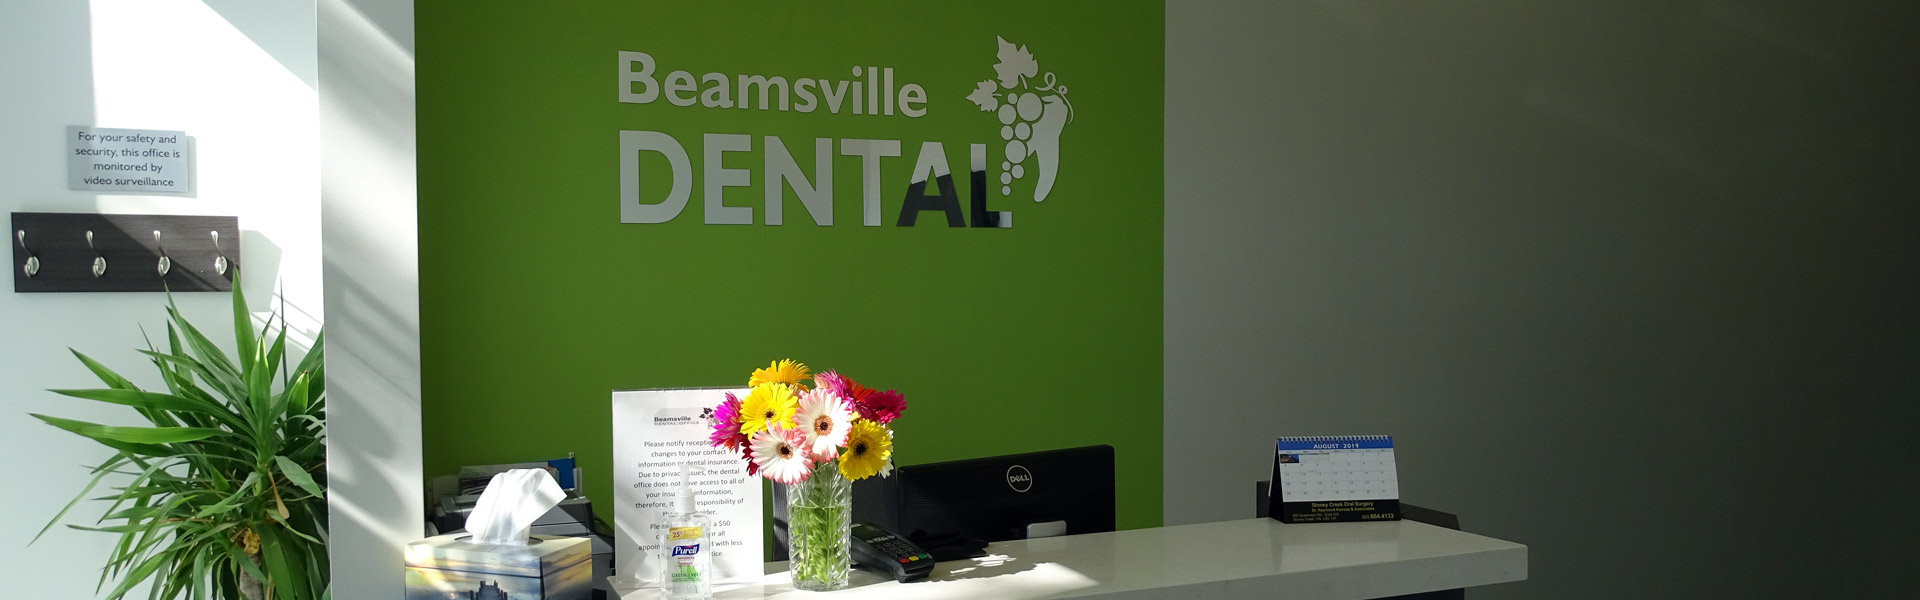 slider-beamsville-dental-office-2